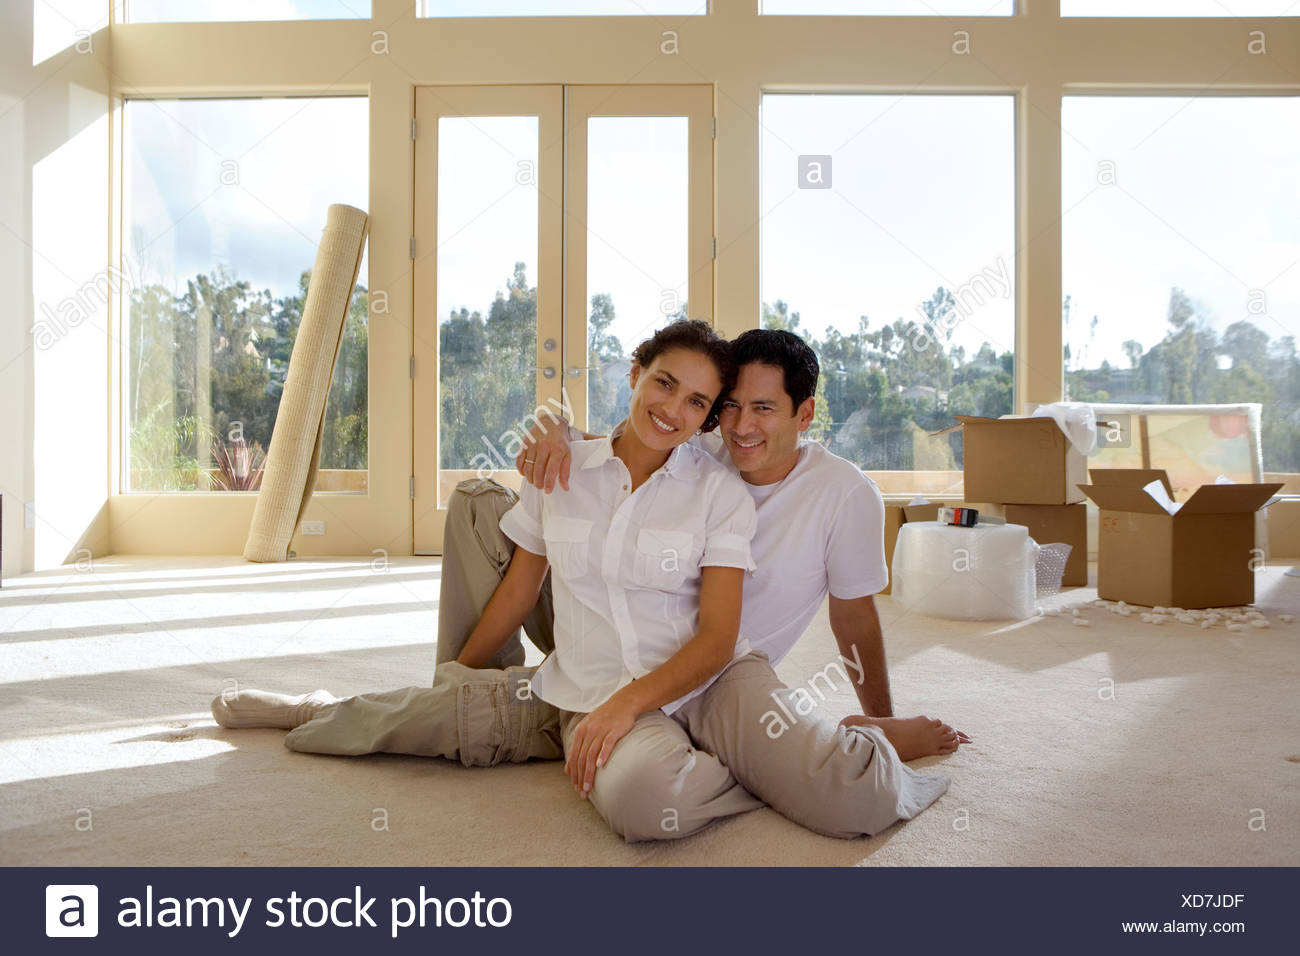 Couple moving house sitting on bare living room floor man with arm around woman smiling portrait - Stock Image